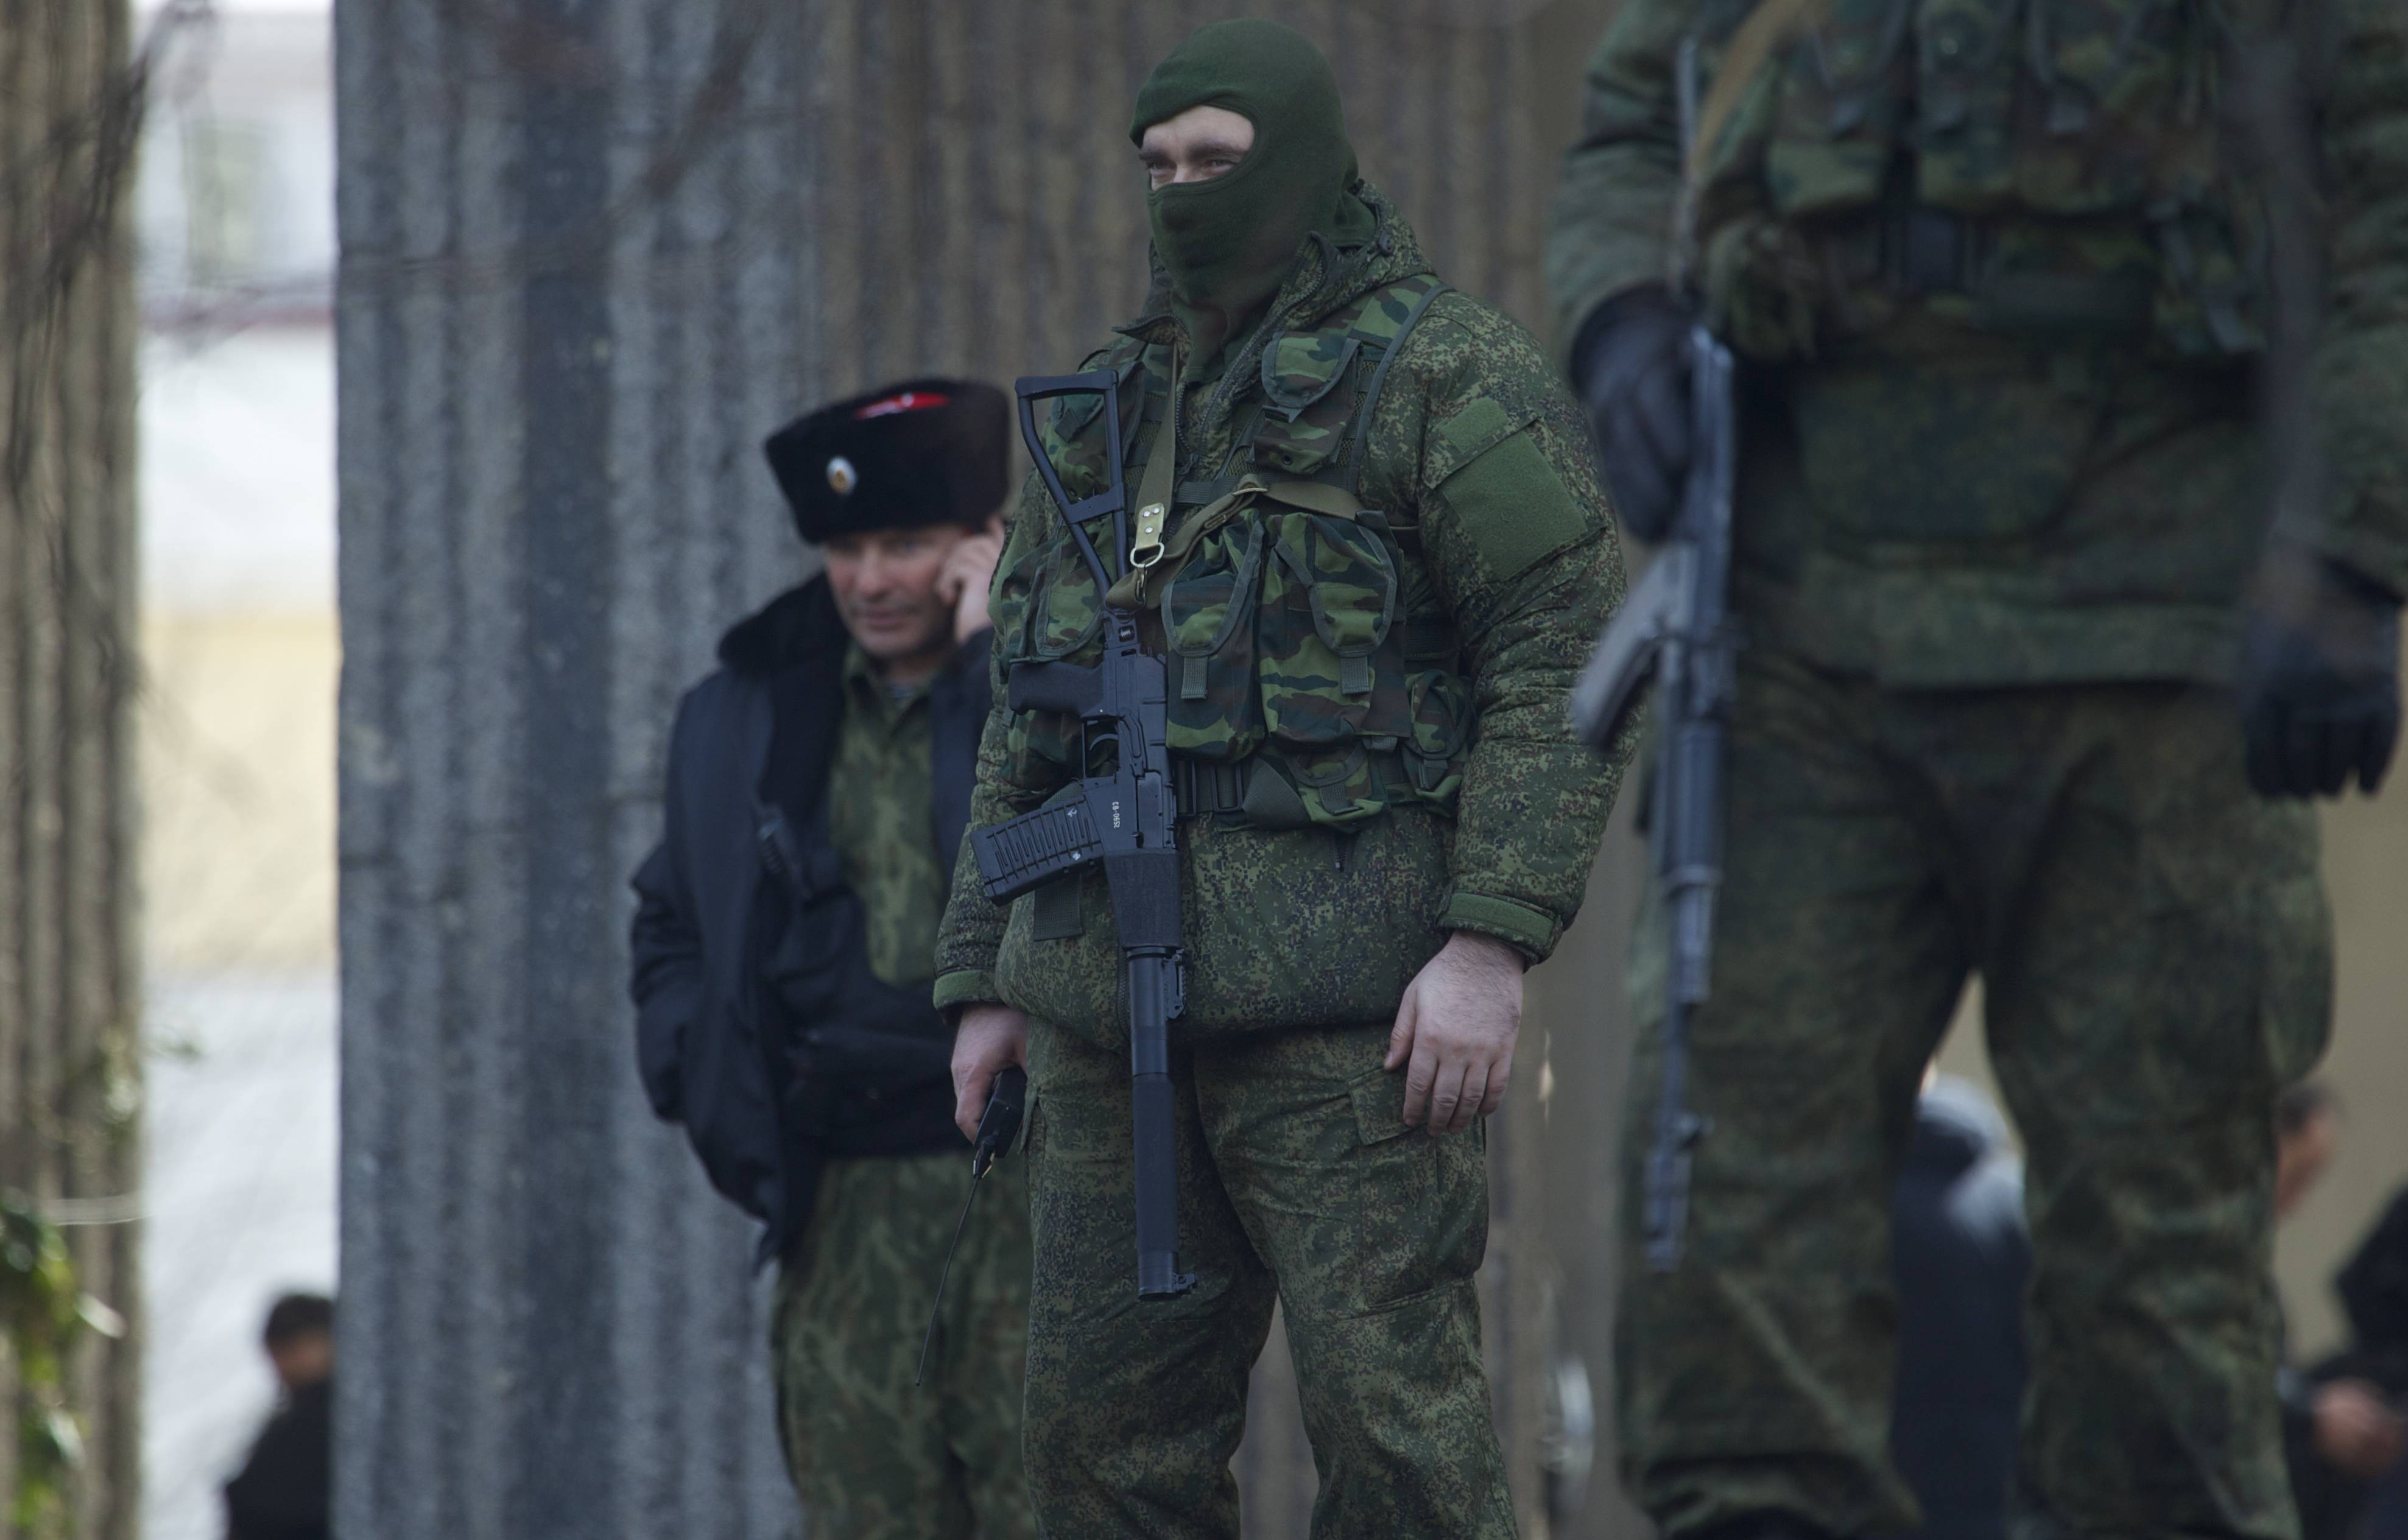 Unidentified gunmen wearing camouflage uniforms block the entrance of the Crimean Parliament building Saturday in Simferopol, Ukraine.